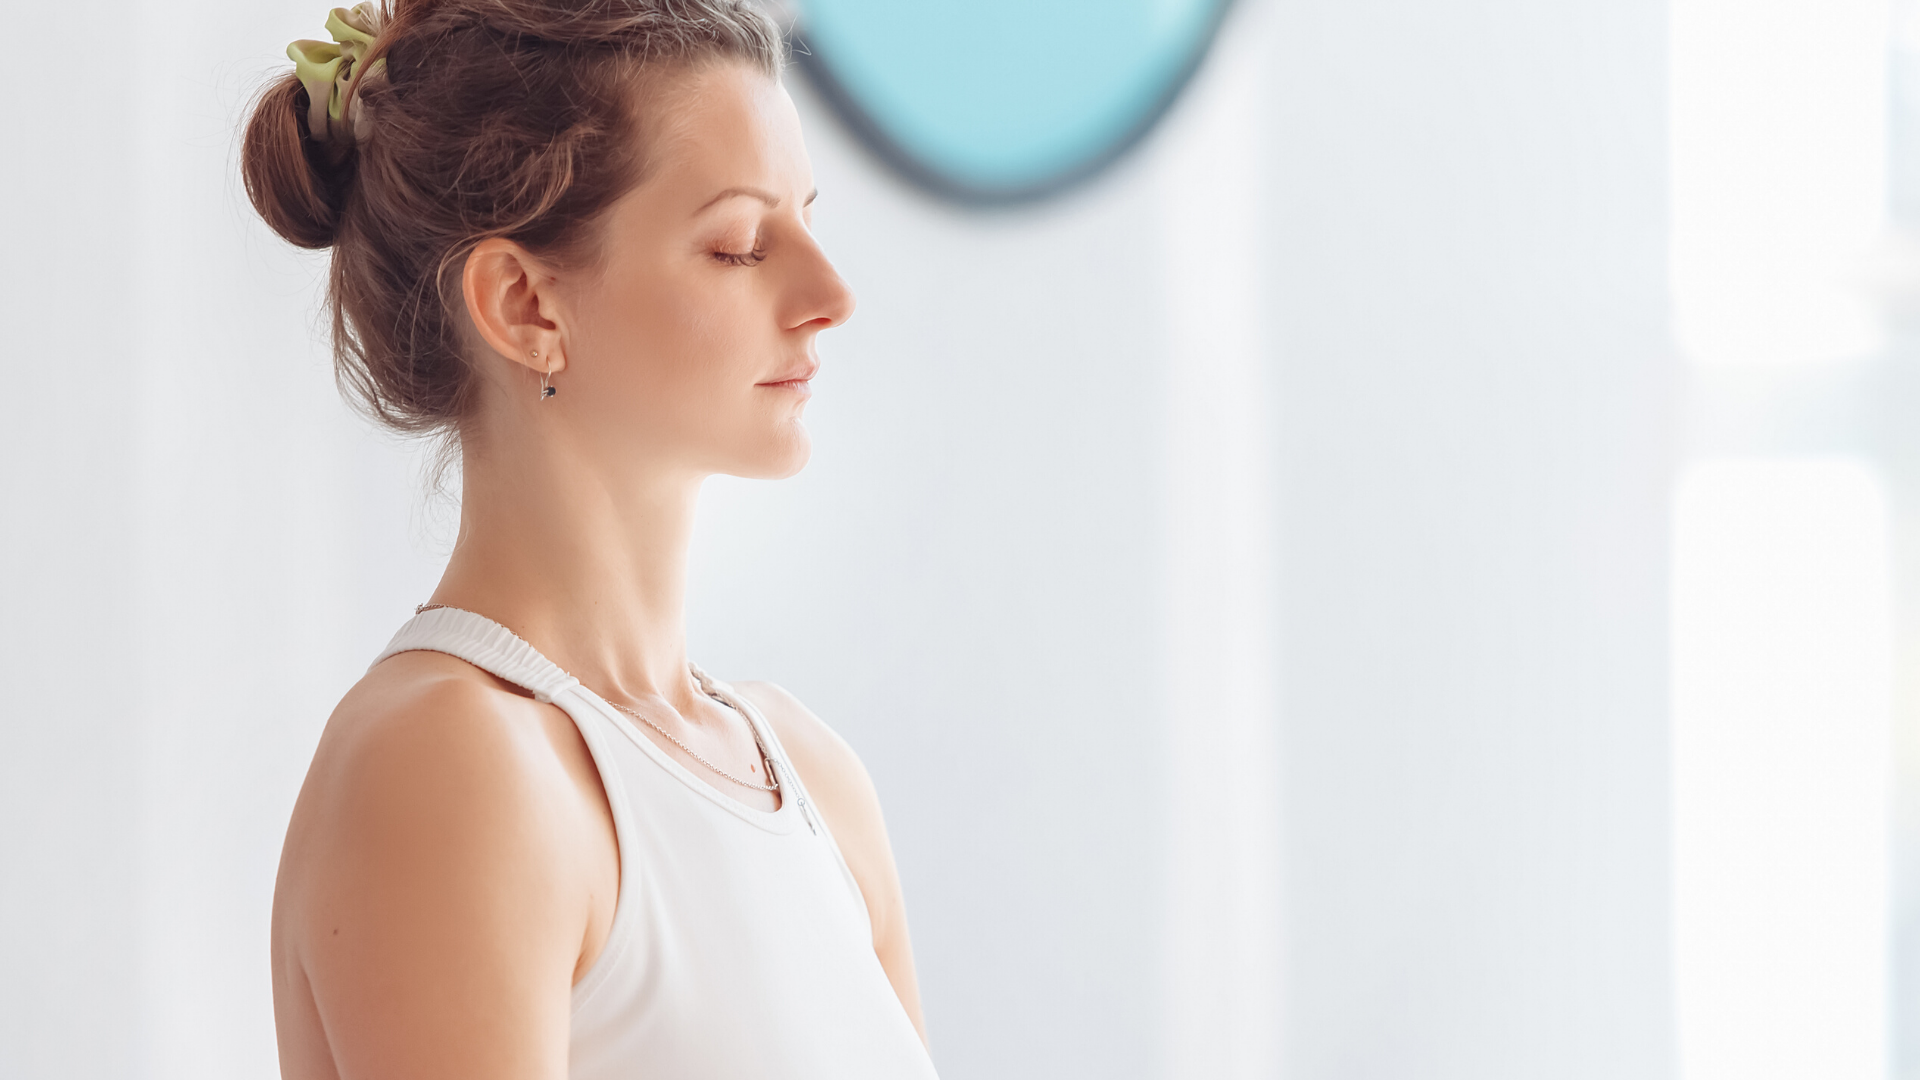 Woman practicing yoga meditation with eyes closed.